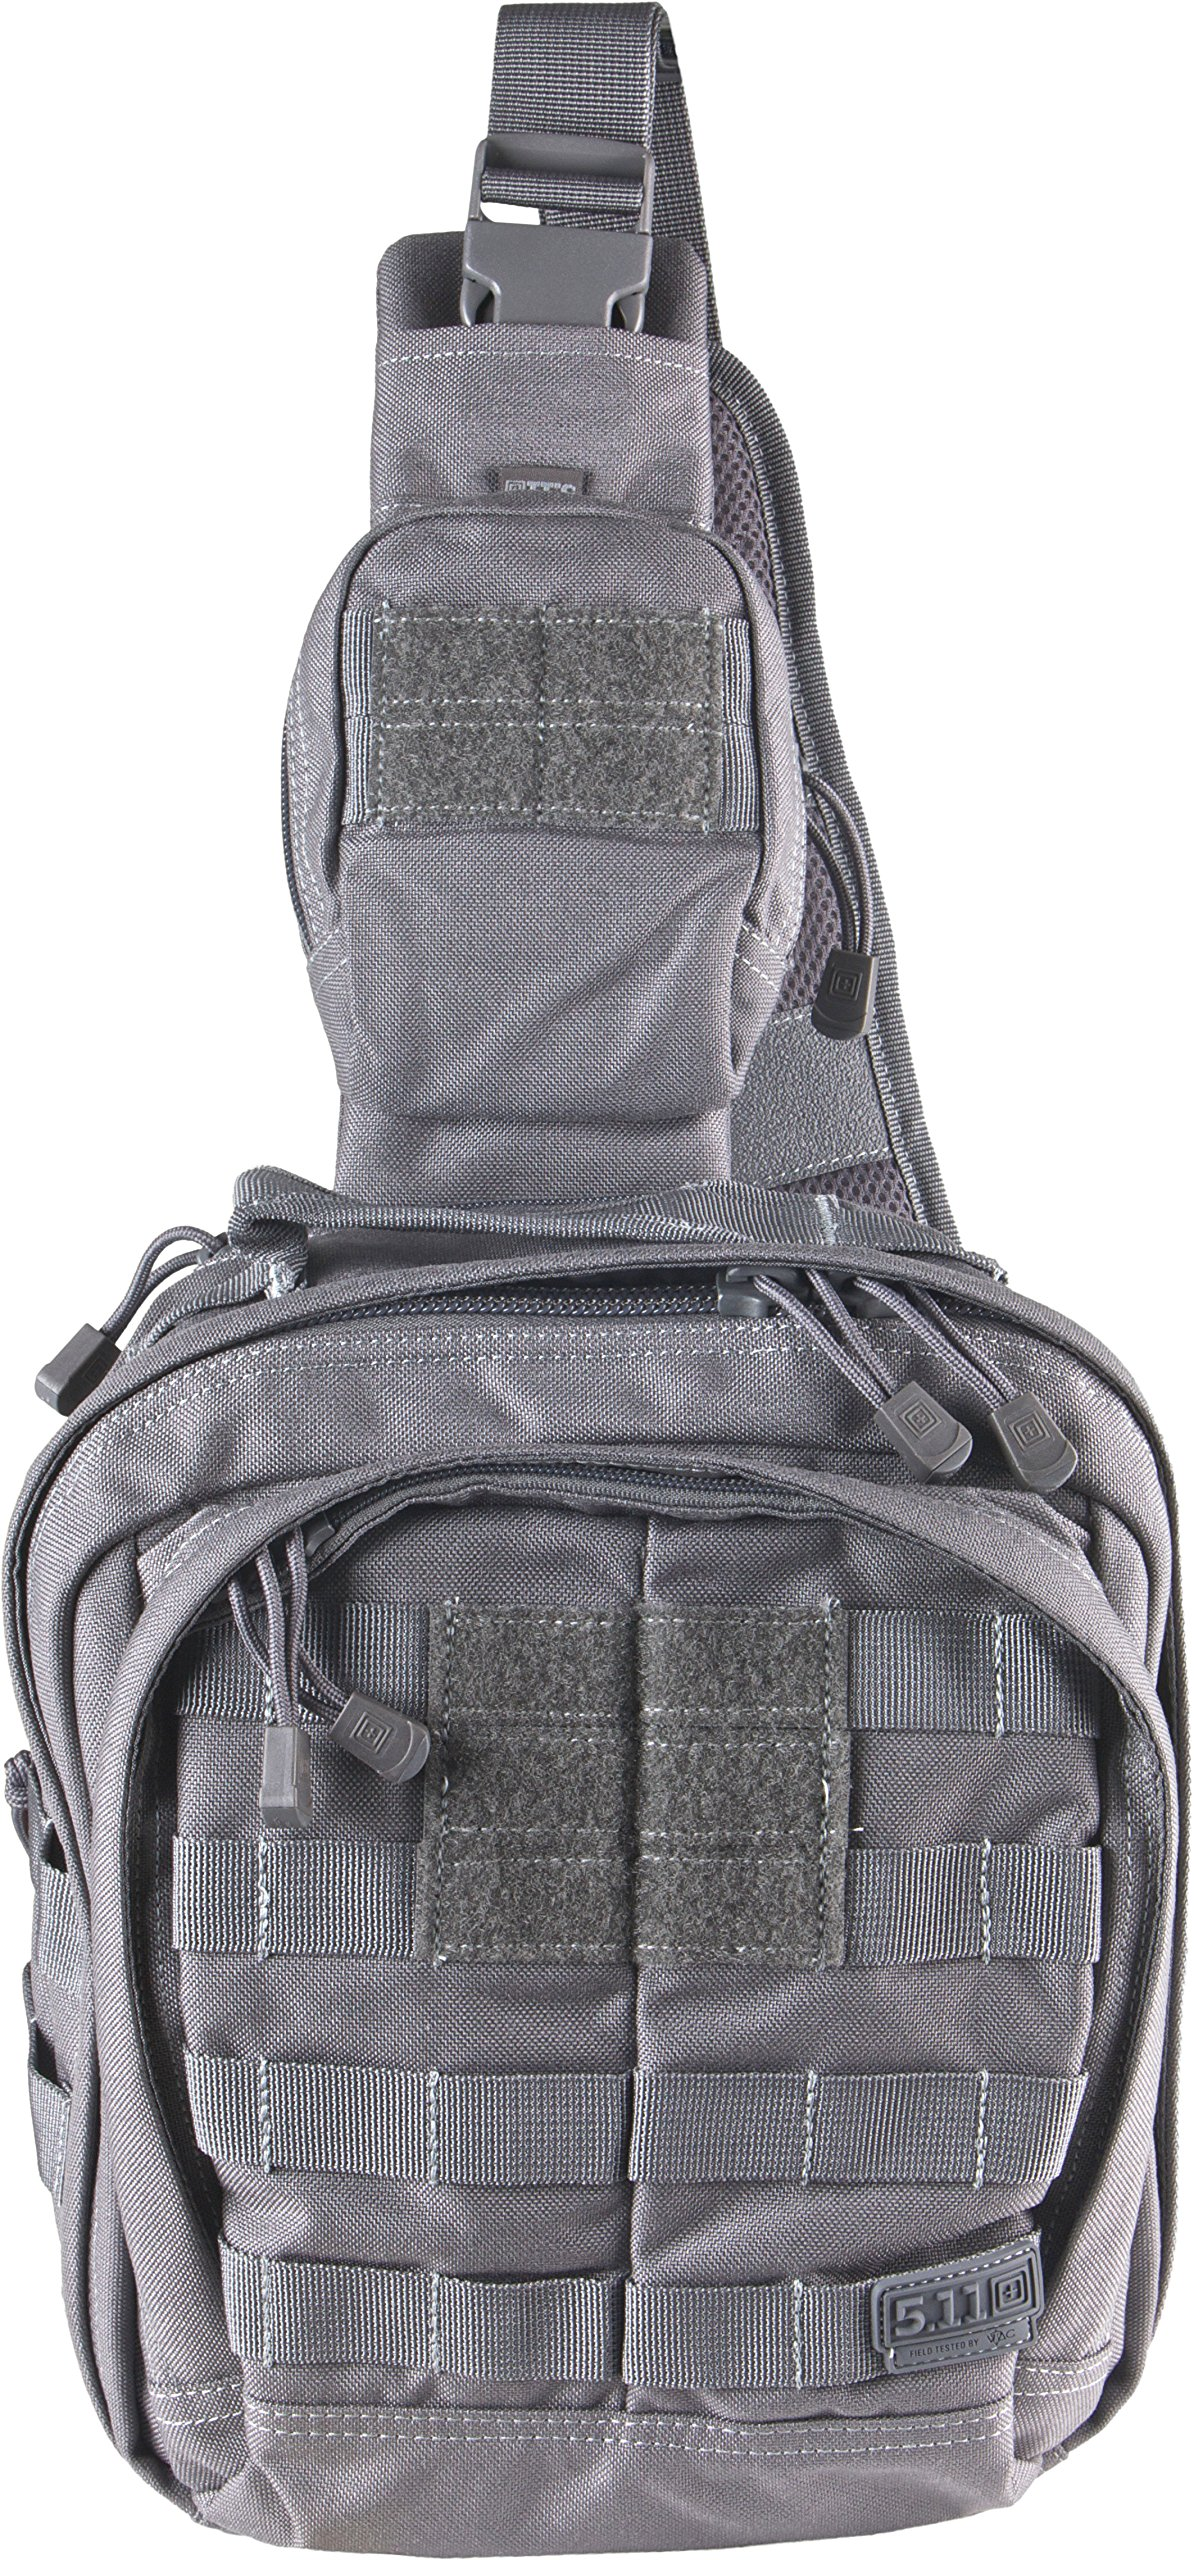 5.11 RUSH MOAB 6 Tactical Sling Pack Military Molle Backpack Bag, Style 56963, Storm by 5.11